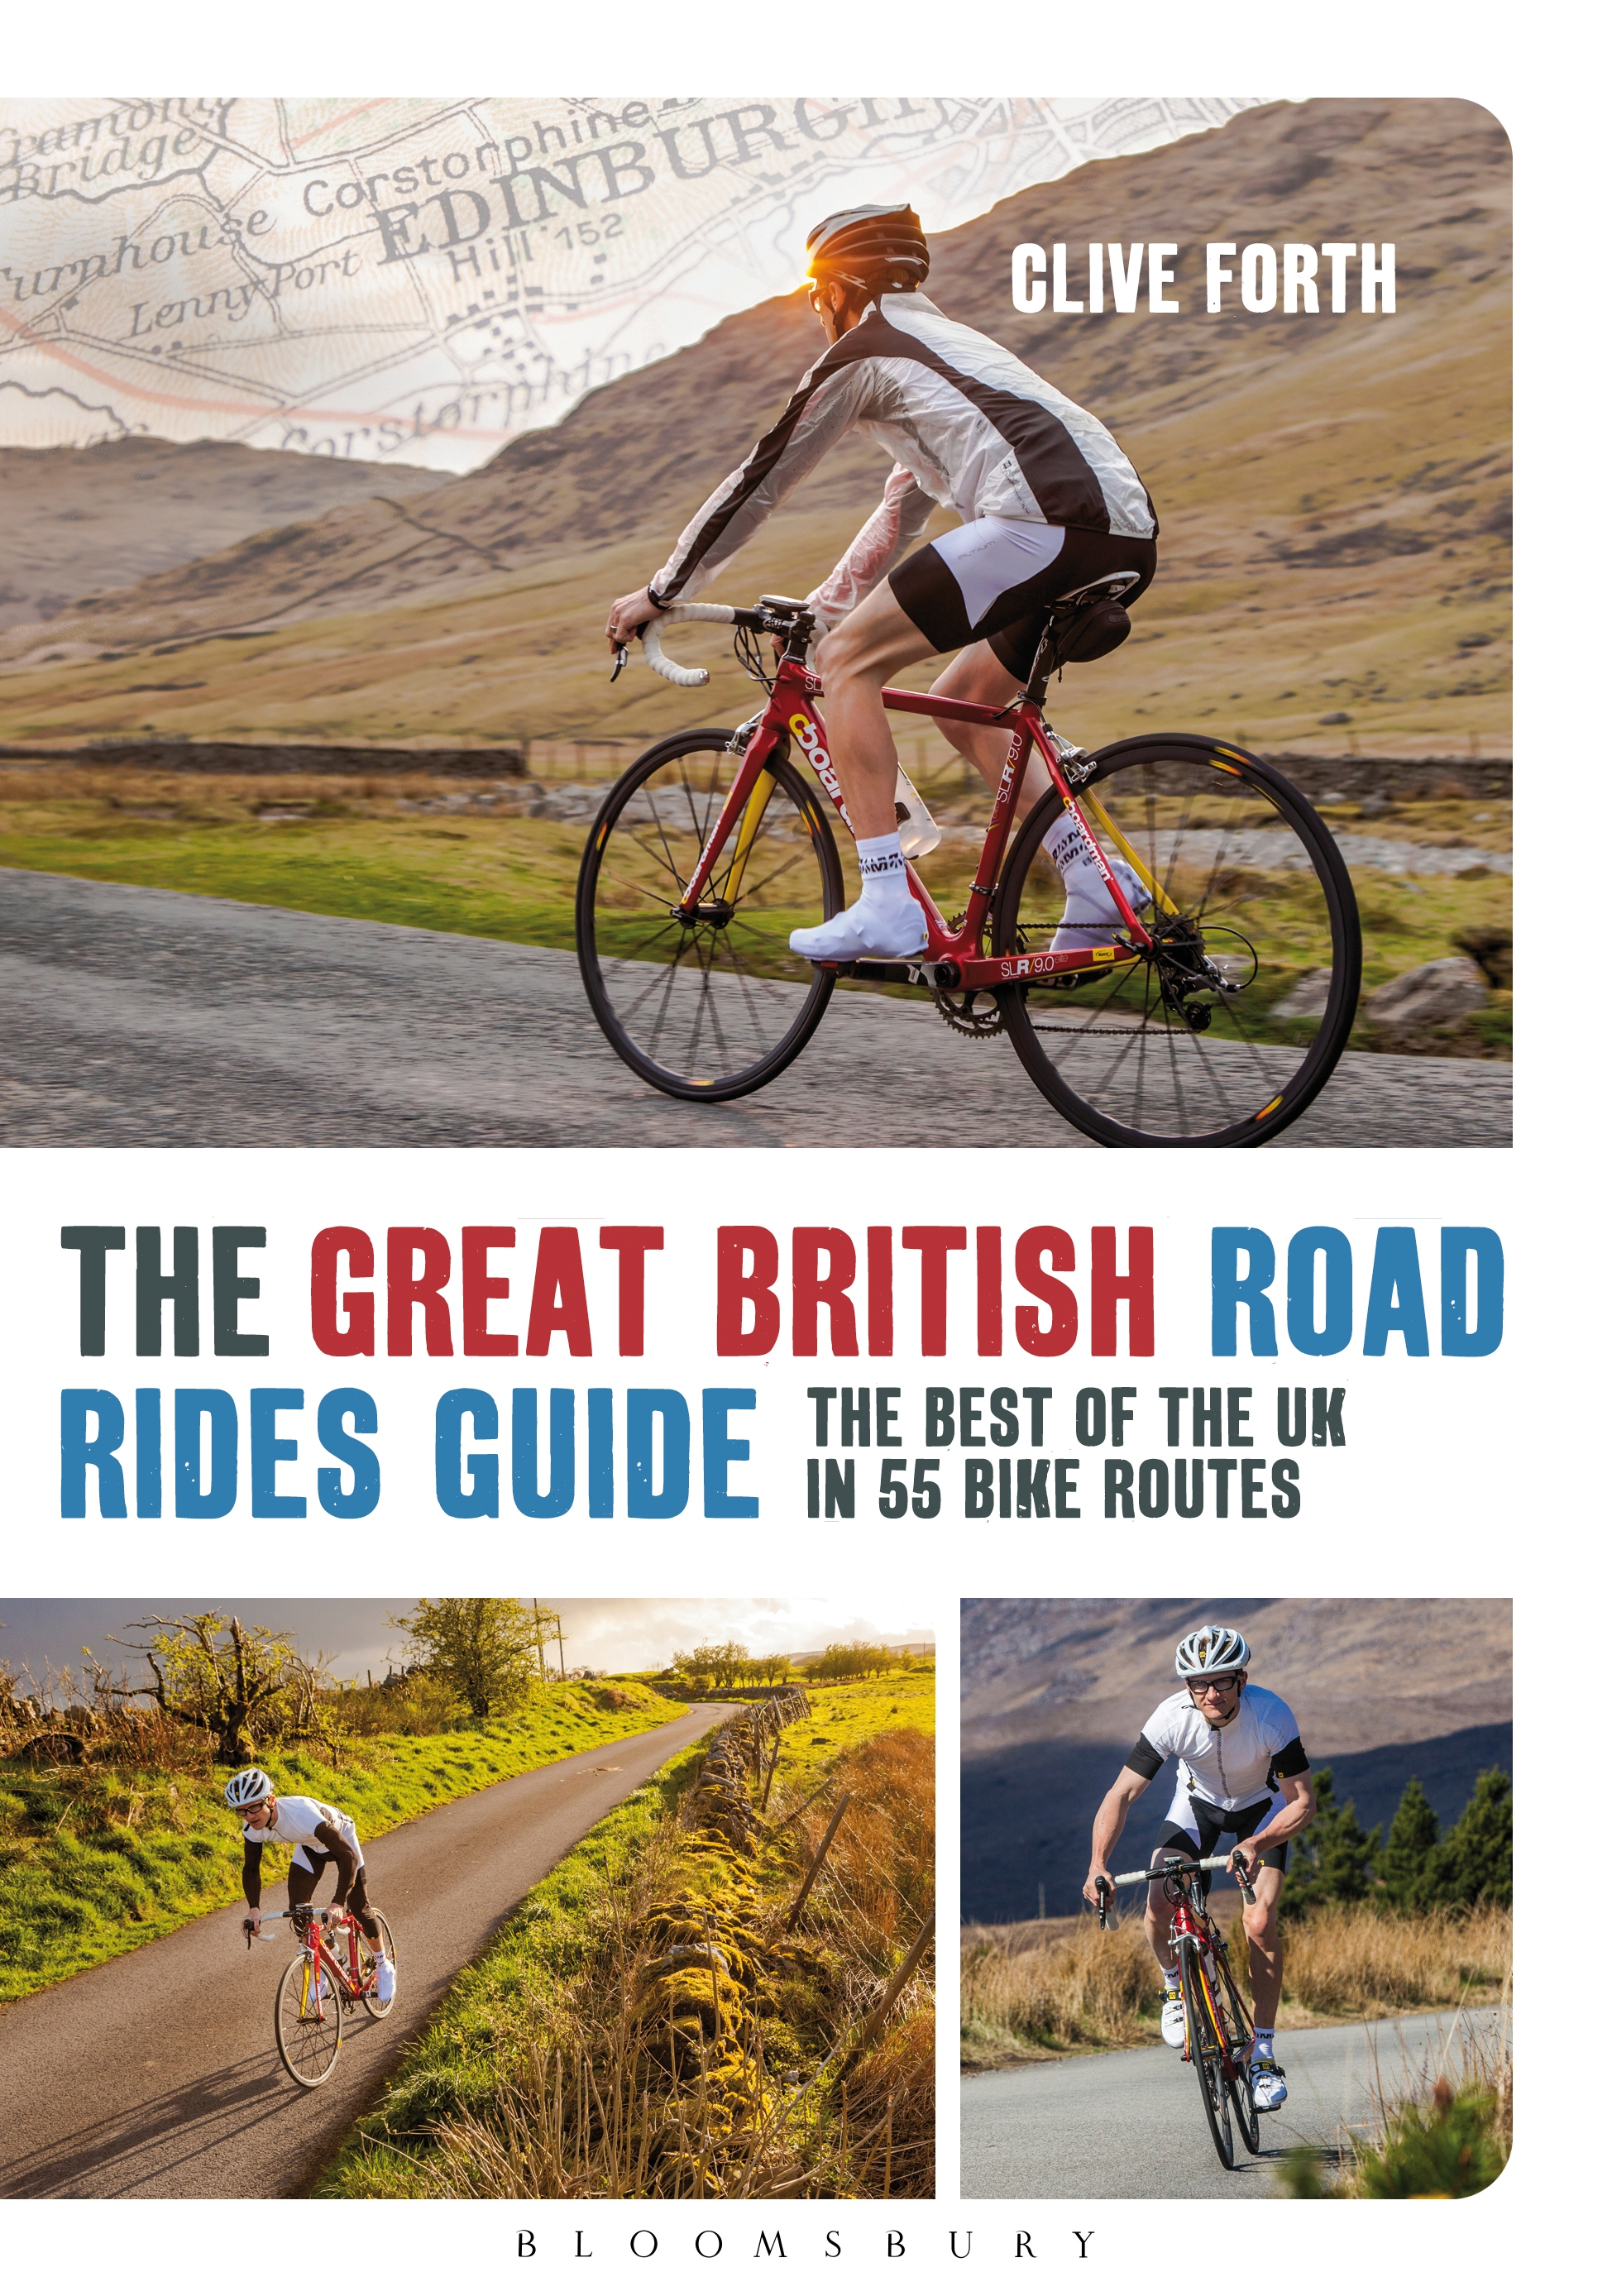 The Great British Road Rides Guide The Best of the UK in 55 Bike Routes